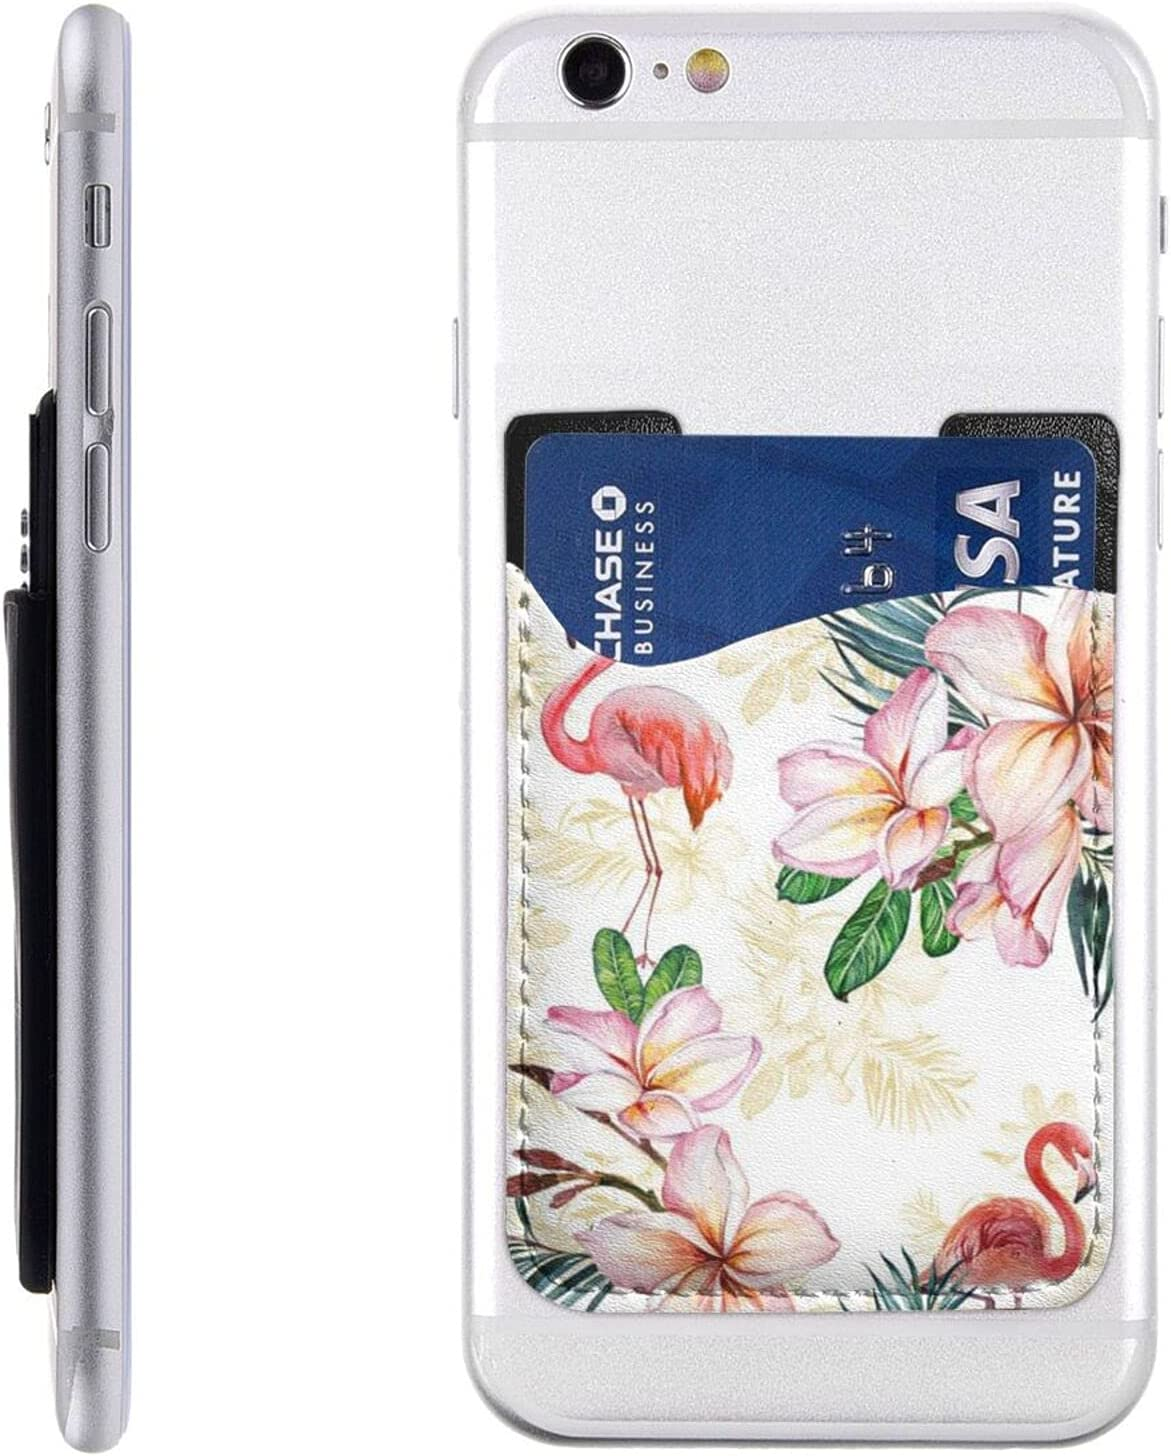 Same day shipping Flamingo Flowers Phone Card Holder Wall On Stick Regular discount Cell